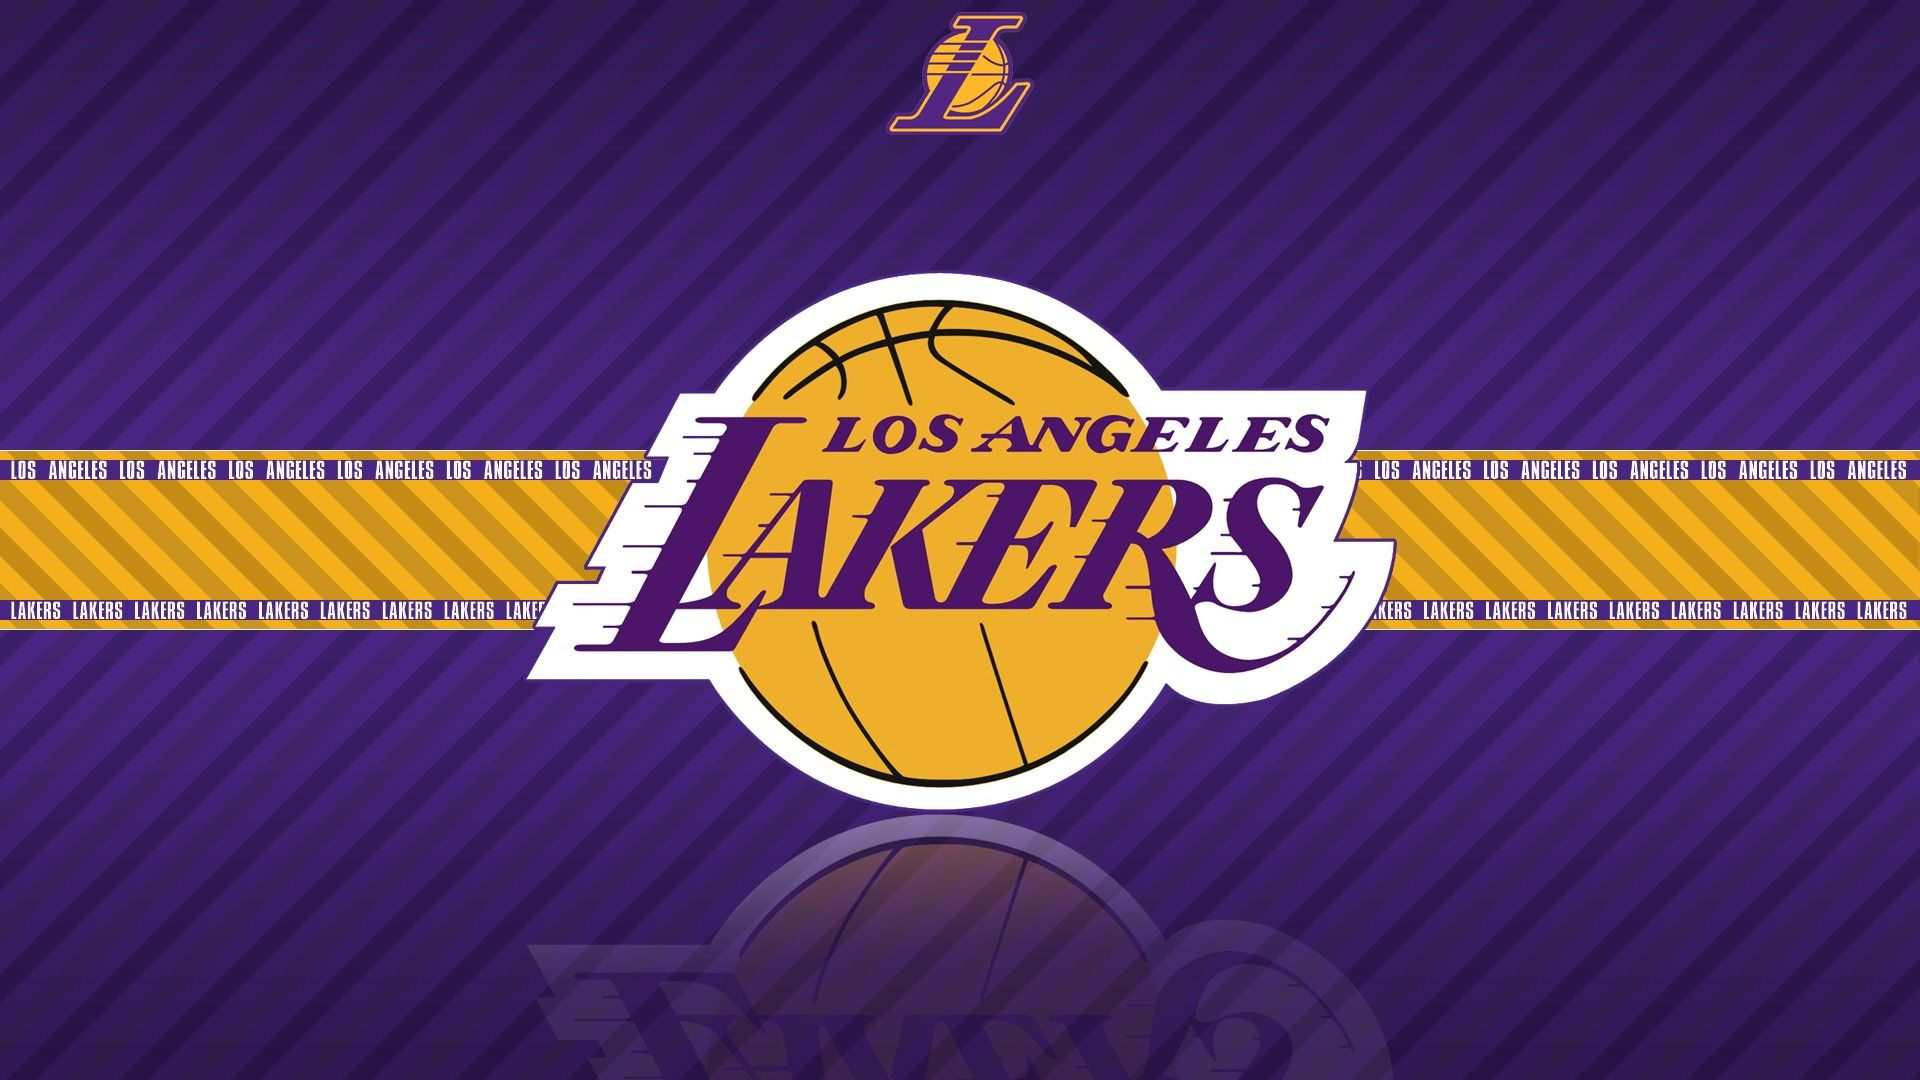 NBA Los Angeles Lakers Team Logo HD Purple Wallpaper Widescreen Desktop 1920x1080px